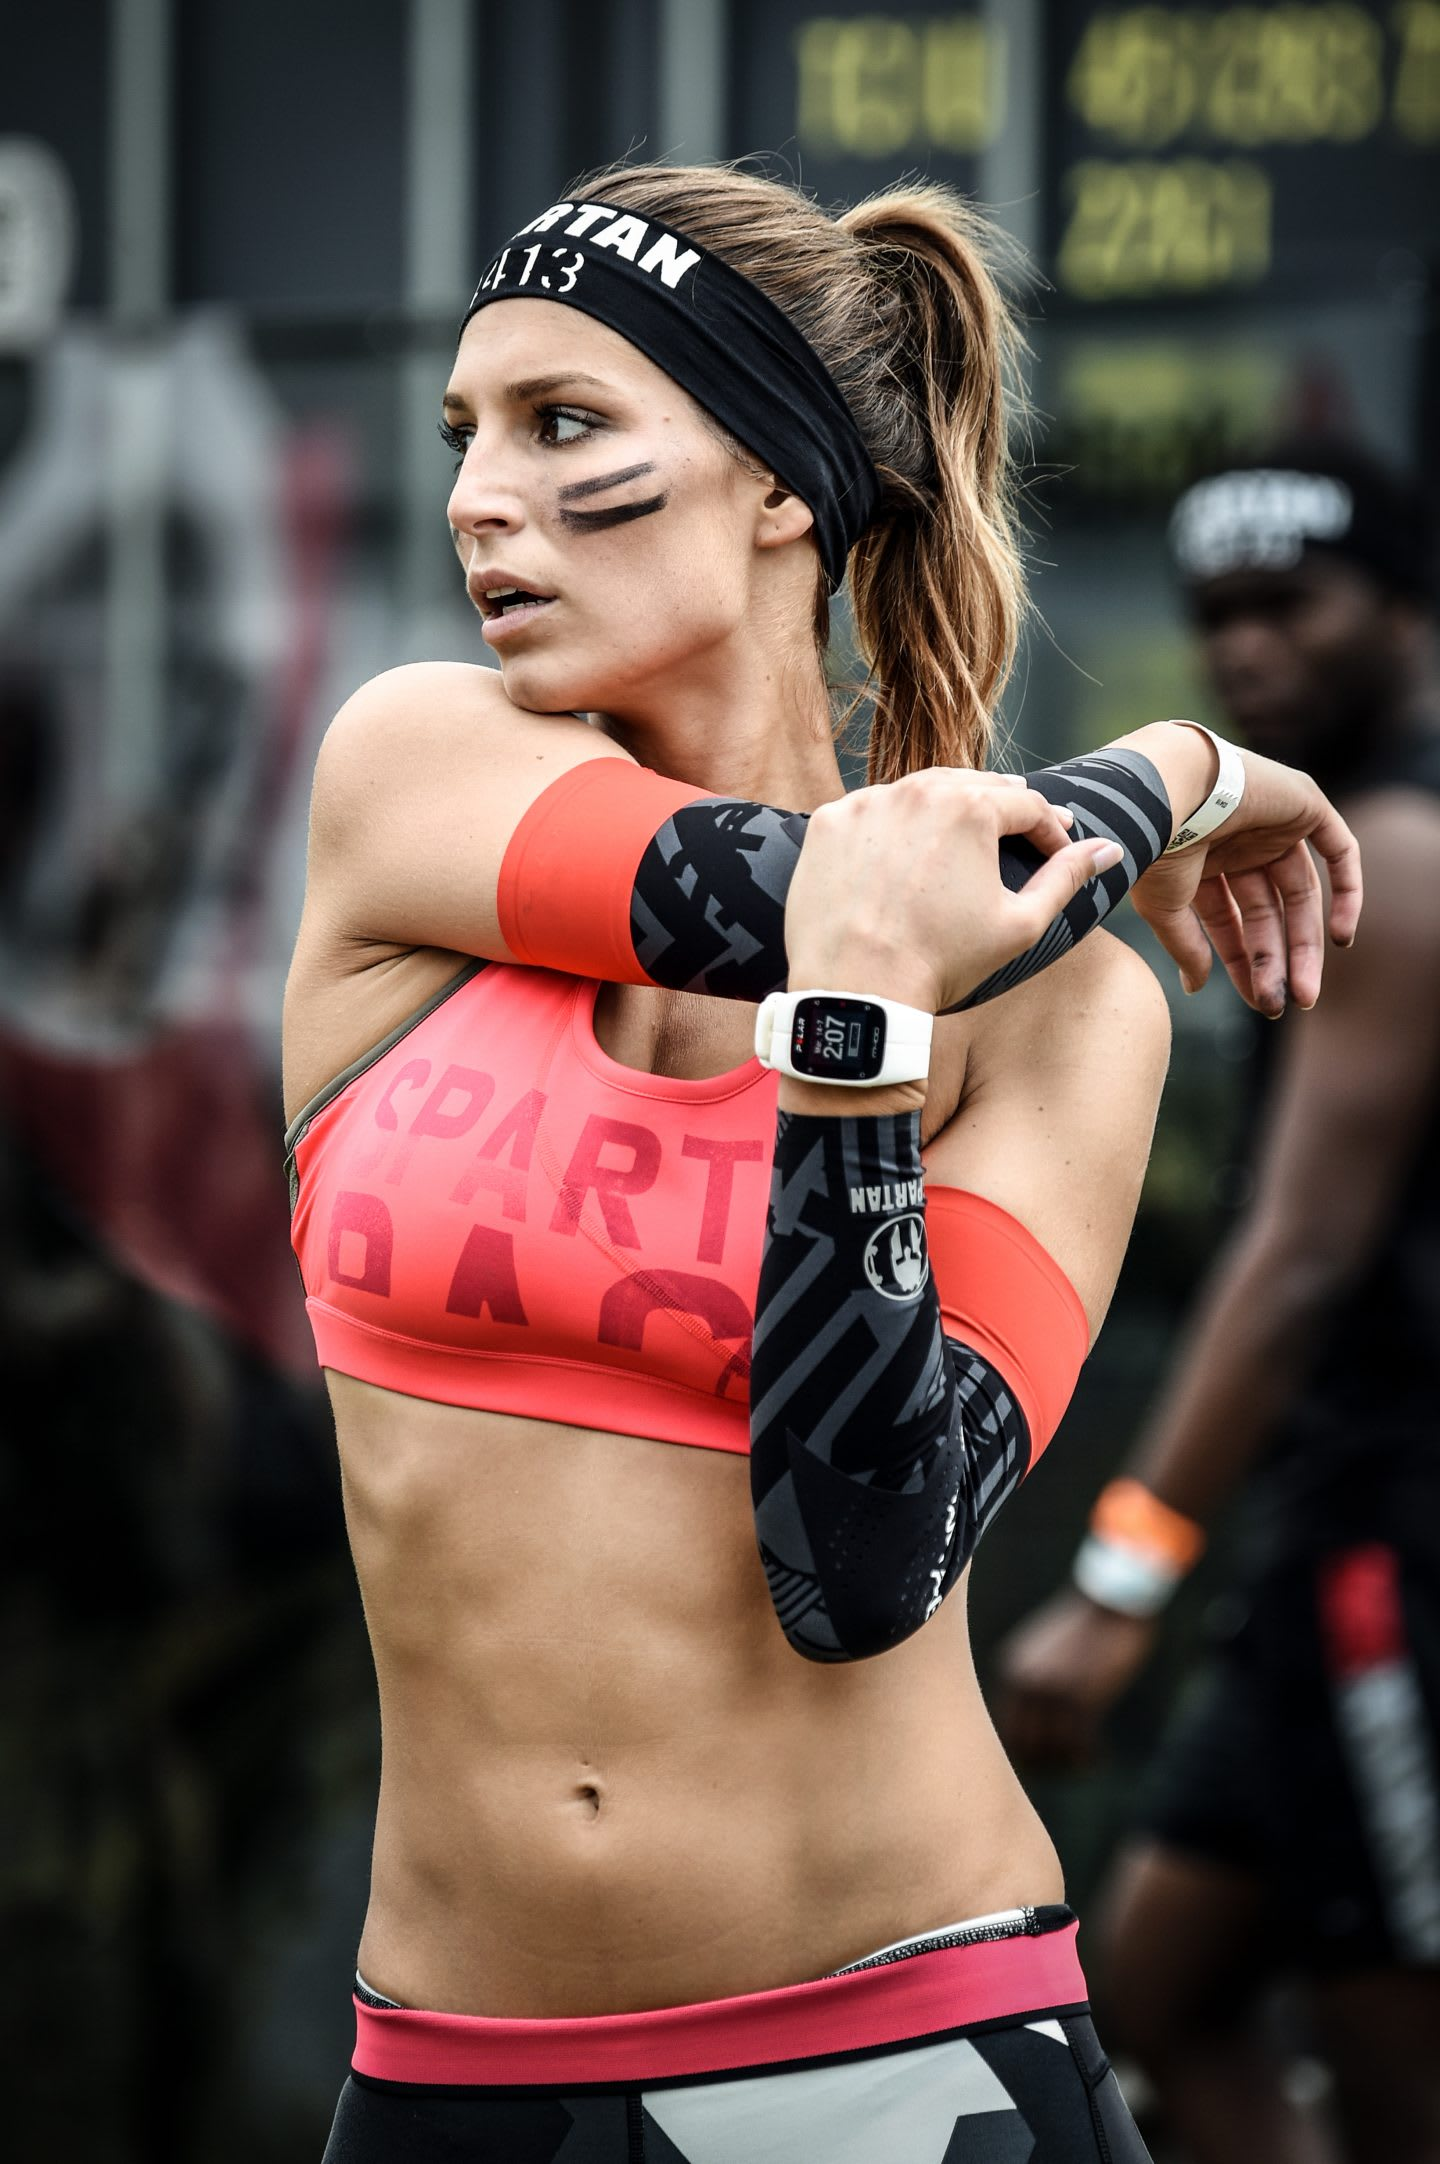 woman stretching sportswear spartan racer Laury Thilleman